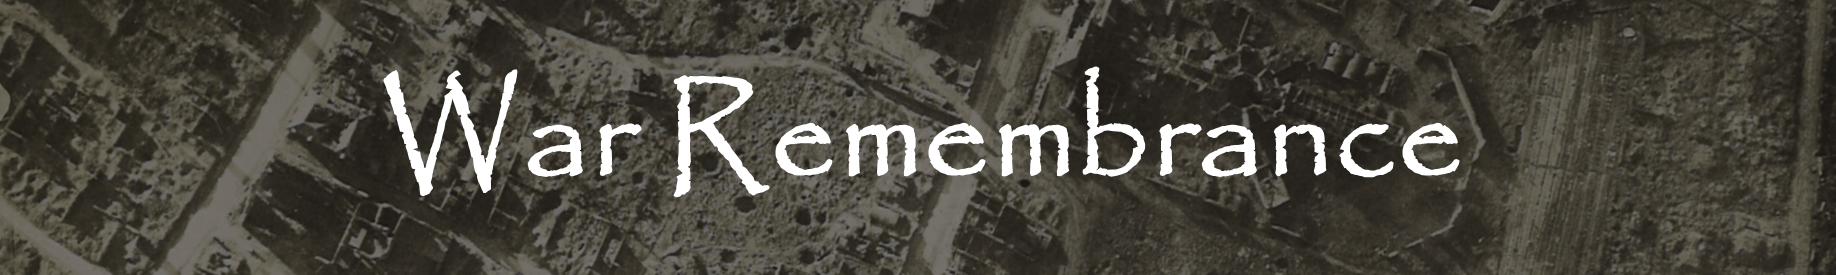 War remembrance header